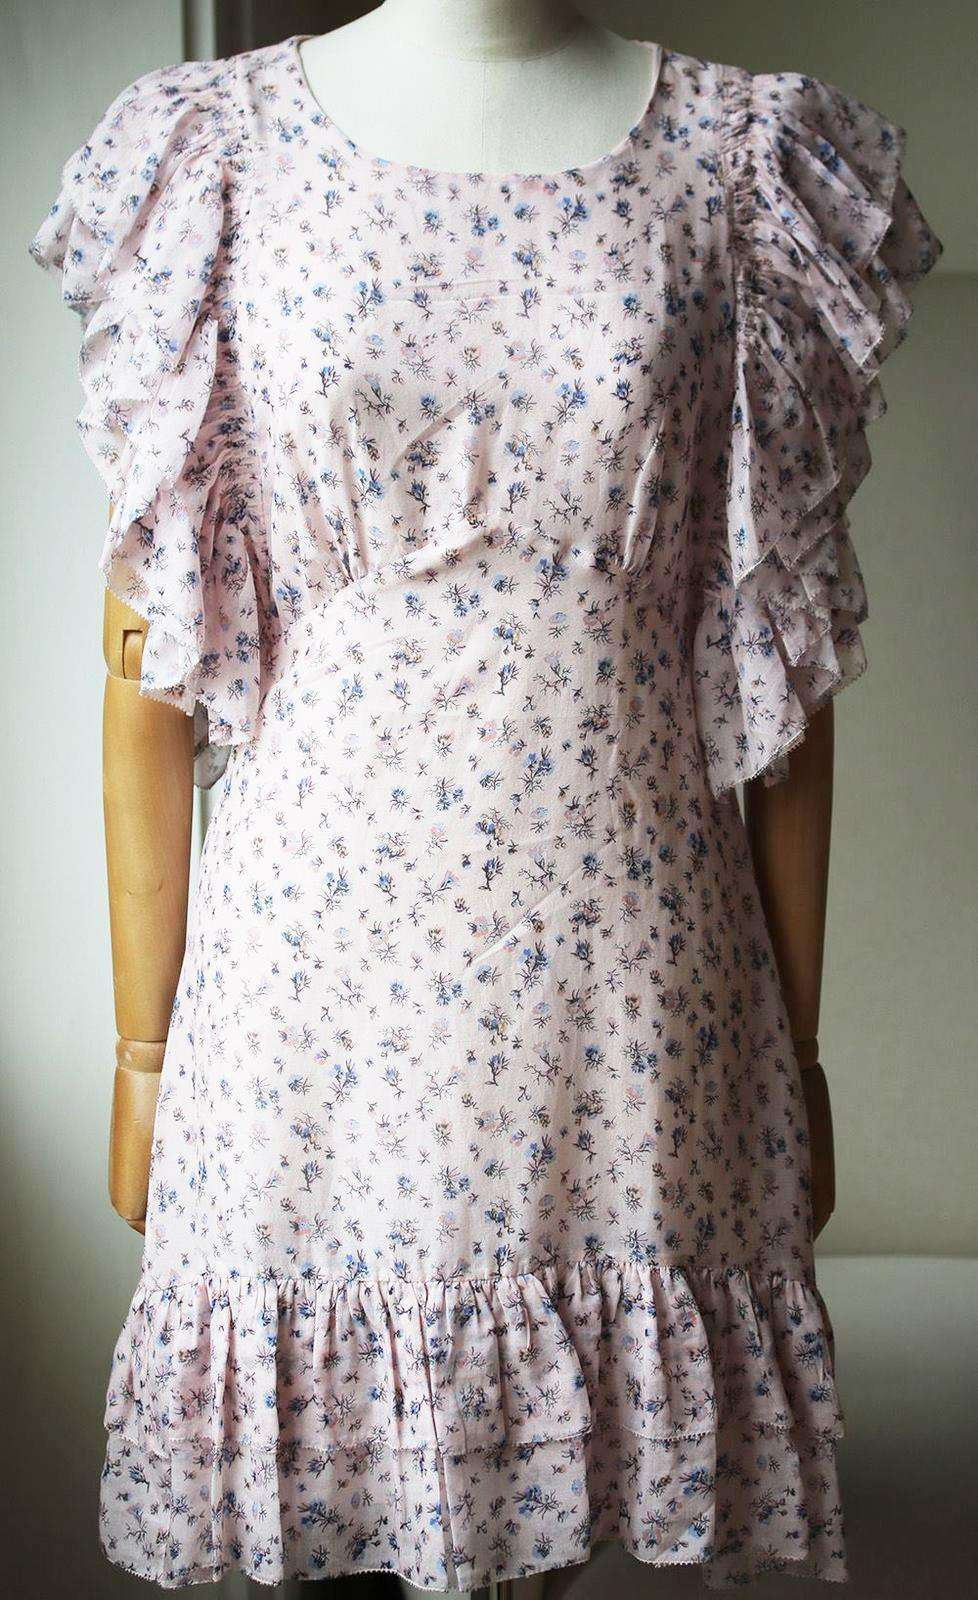 LOVESHACKFANCY EMMY FLORAL PRINT SILK GEORGETTE MINI DRESS US 2 UK 6